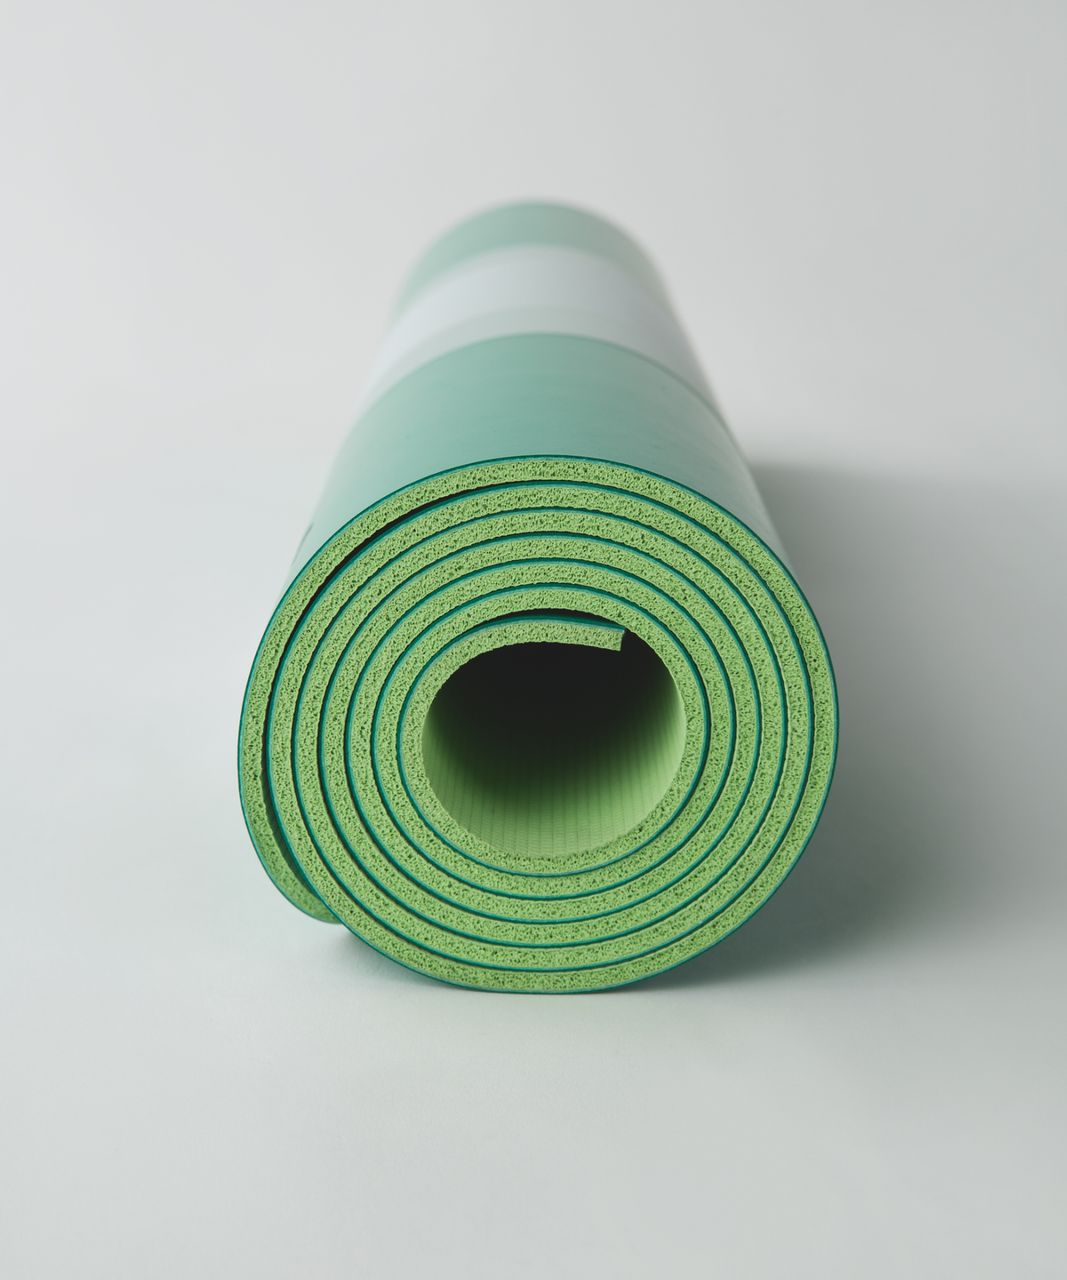 Lululemon The Reversible Mat 5mm - Jungle / Clear Mint